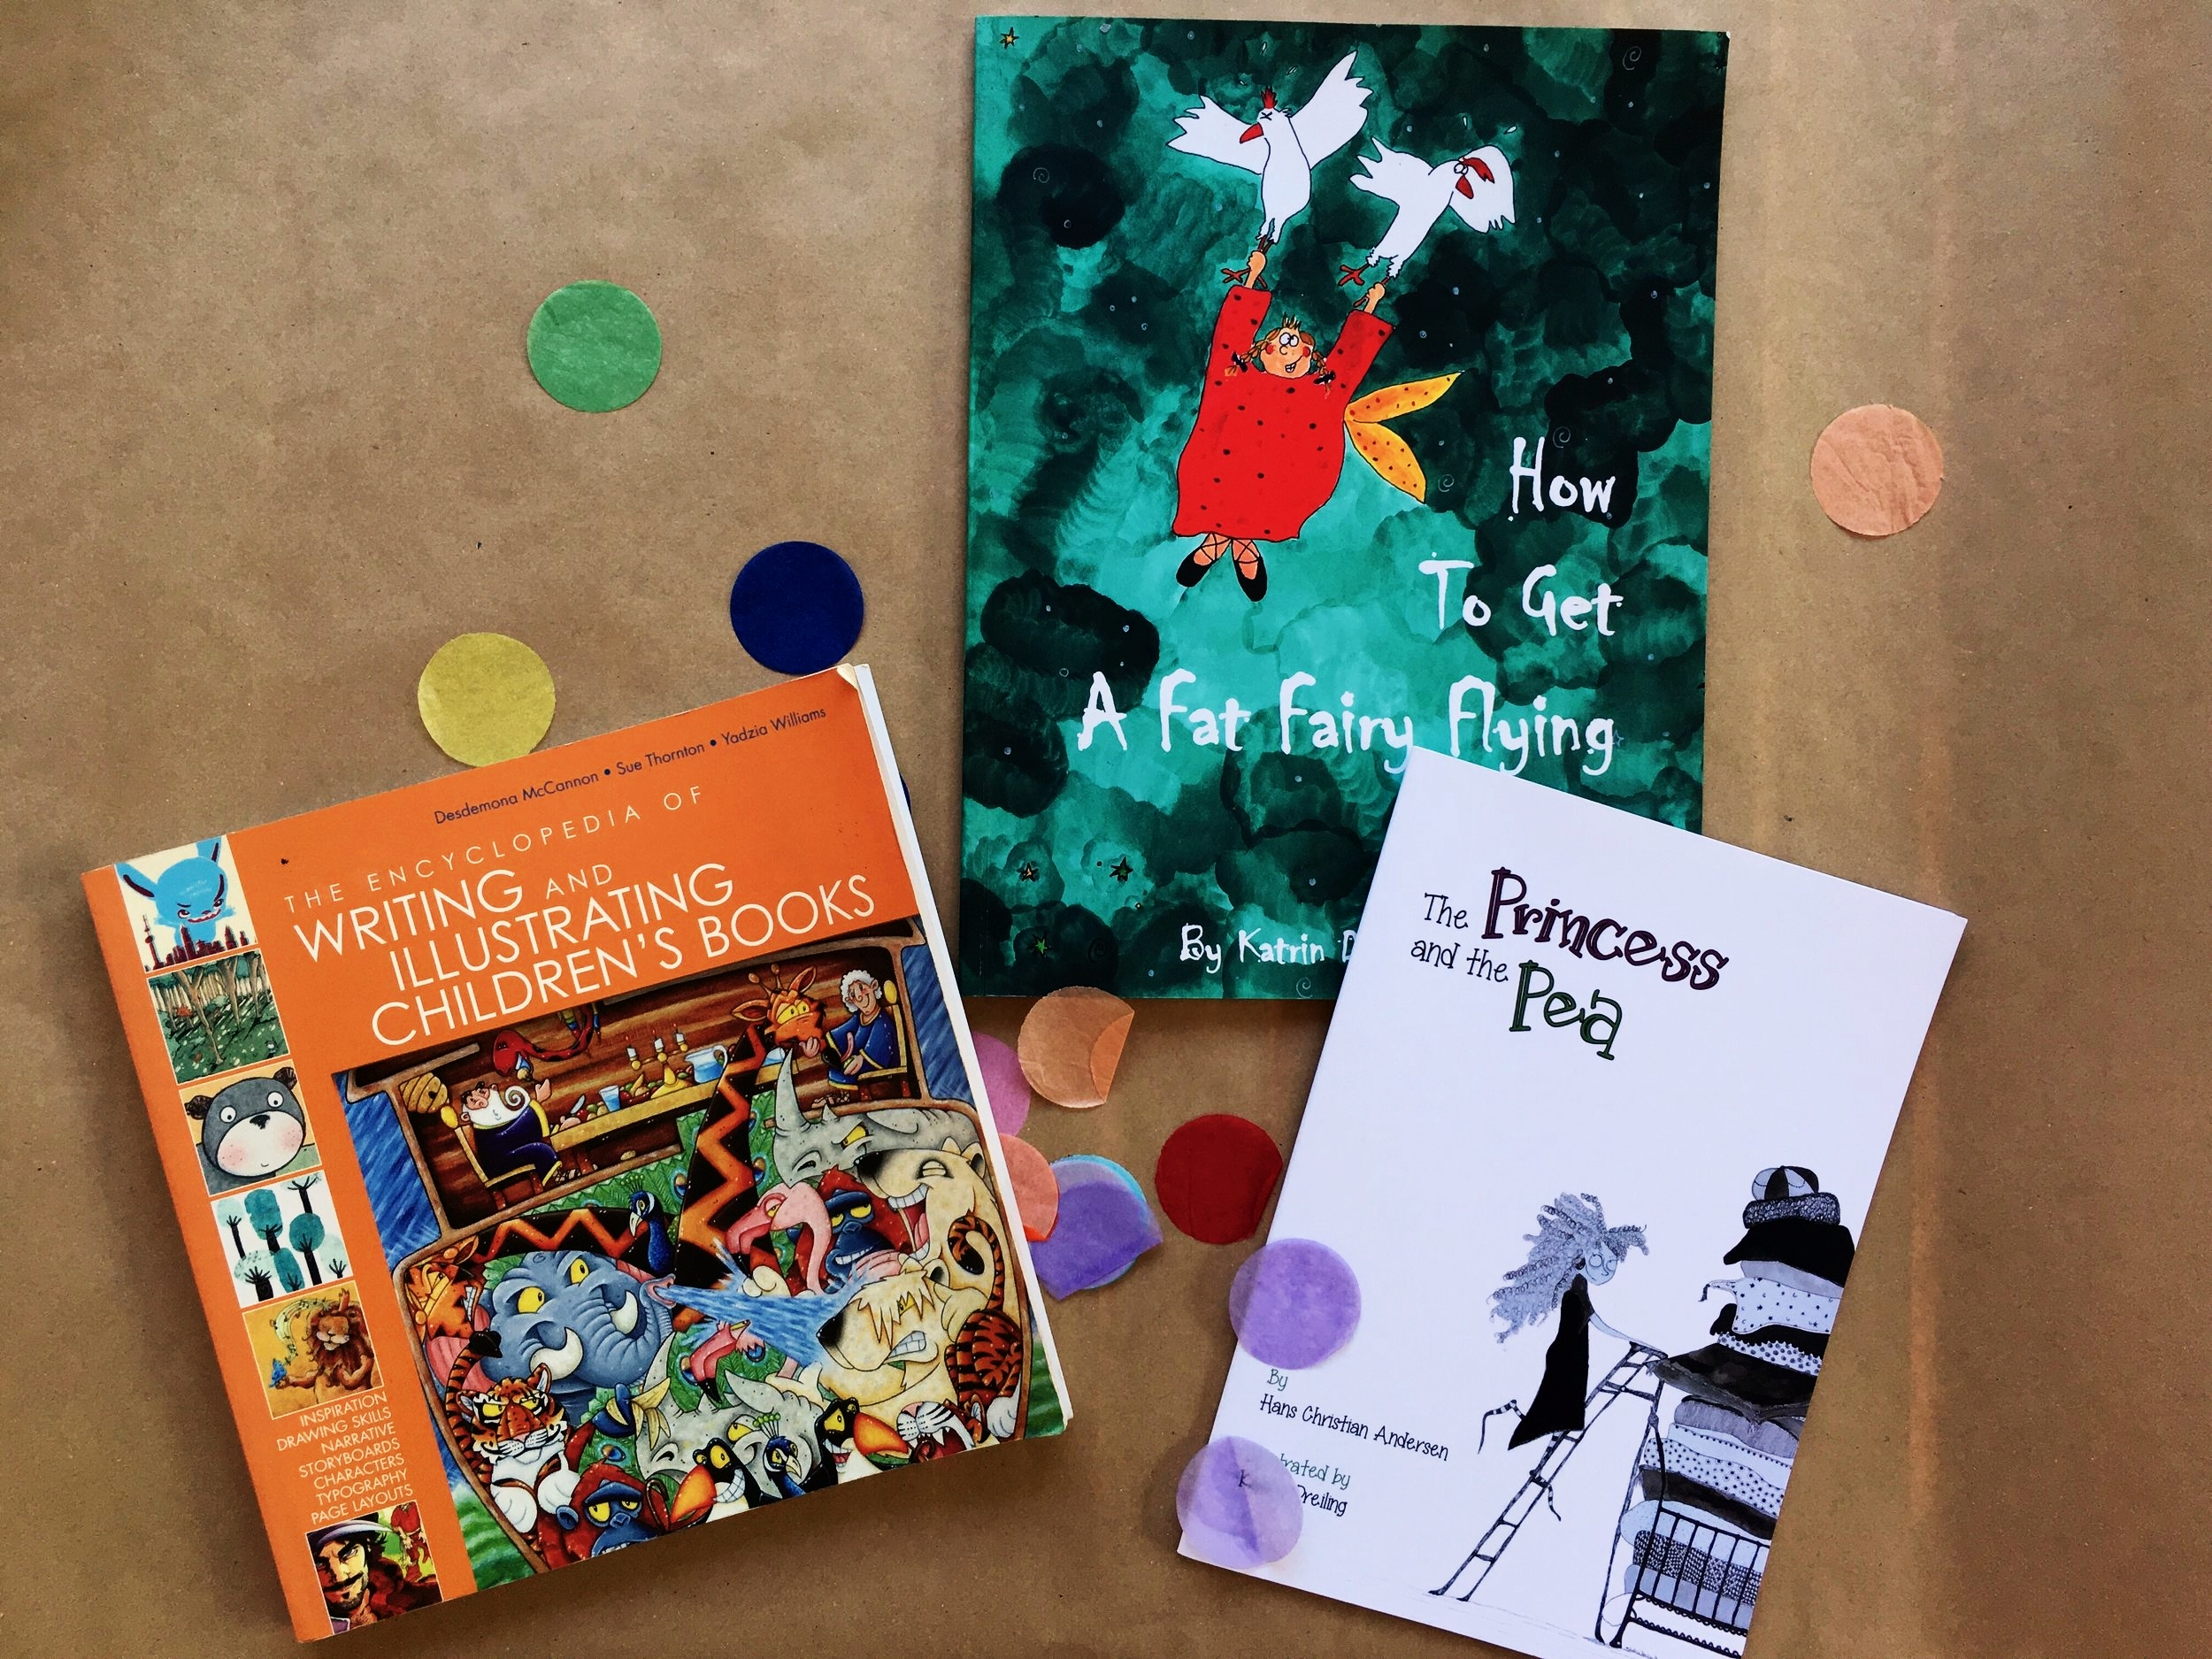 - The Encyclopedia of Writing and Illustrating Children's Books, How to get a Fat Fairy Flying and The Princess and the Pea